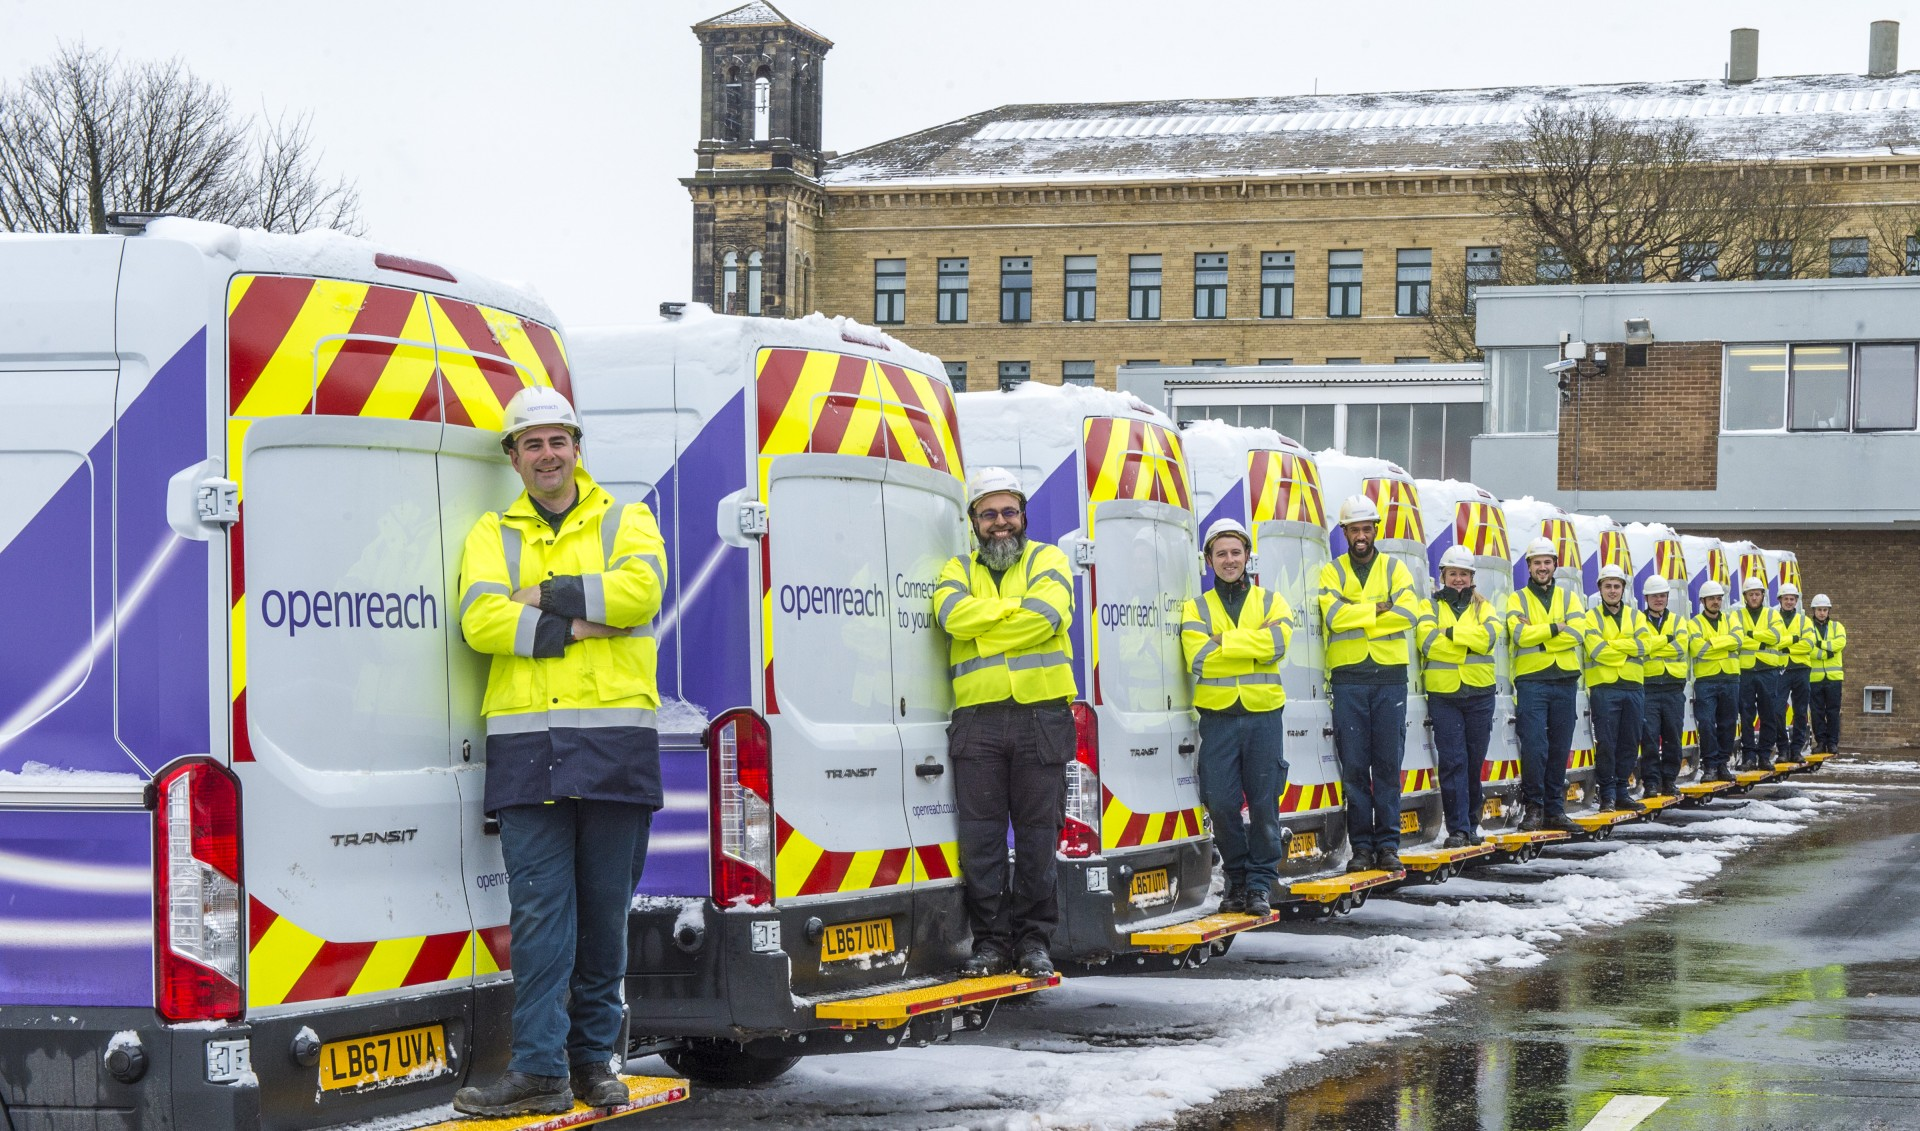 Openreach Engineers ready for winter